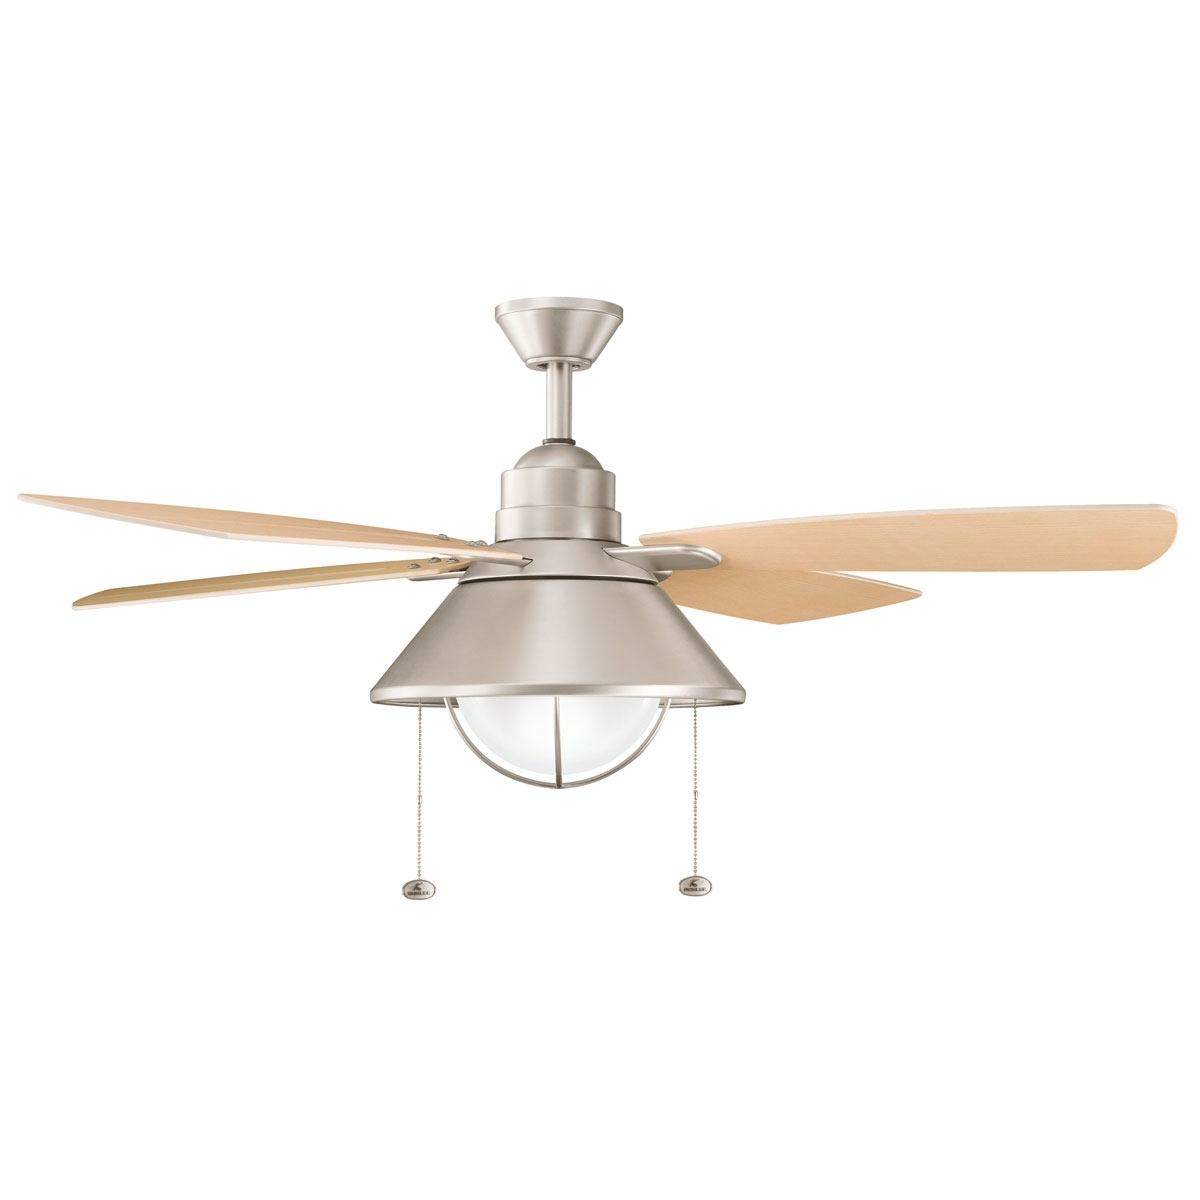 Ceiling: Fashionable Nautical Ceiling Fans To Give Your Room A Bold Inside Outdoor Themed Ceiling Lights (View 5 of 15)